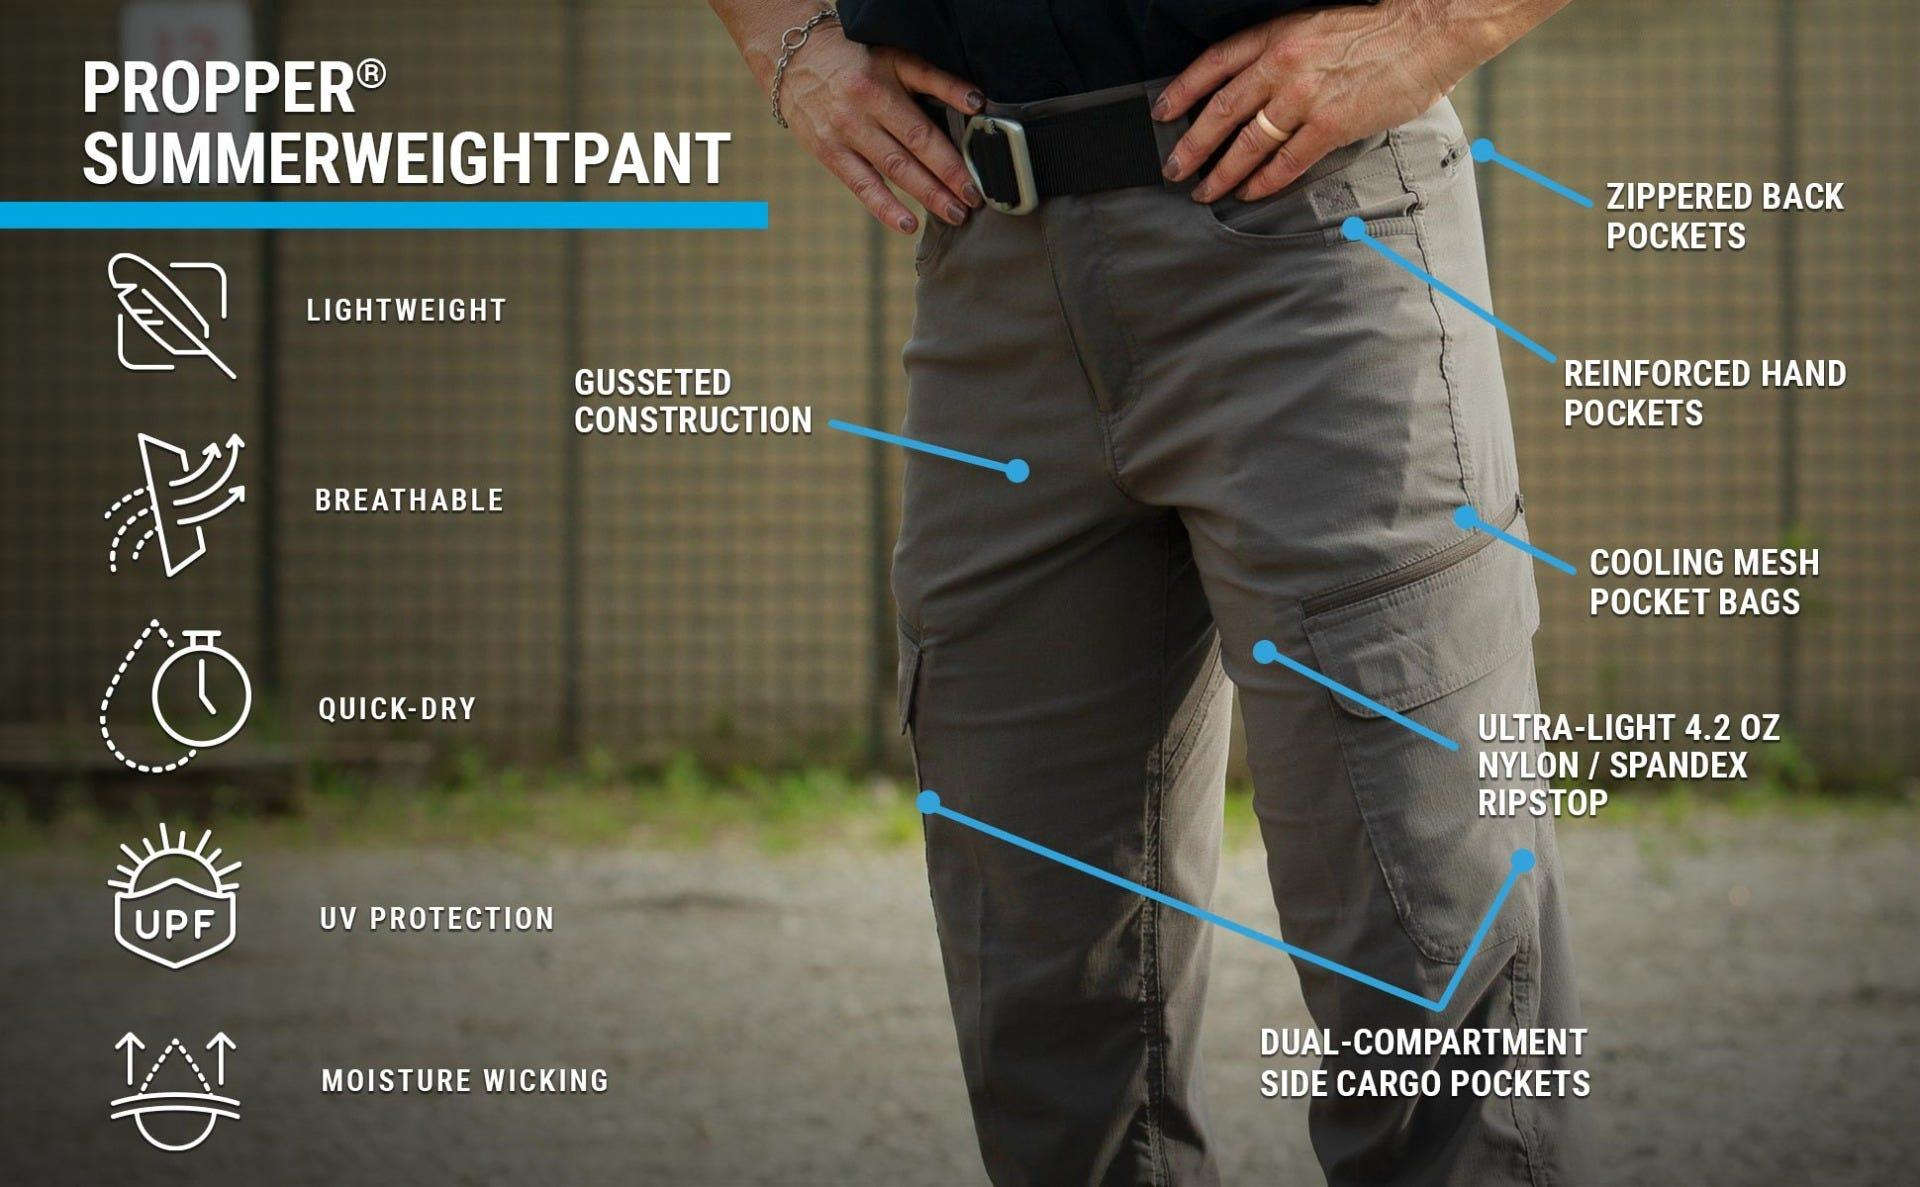 Women's summerweight pants feature gusseted crotch mesh pocket bags, upf protection and are quick-drying